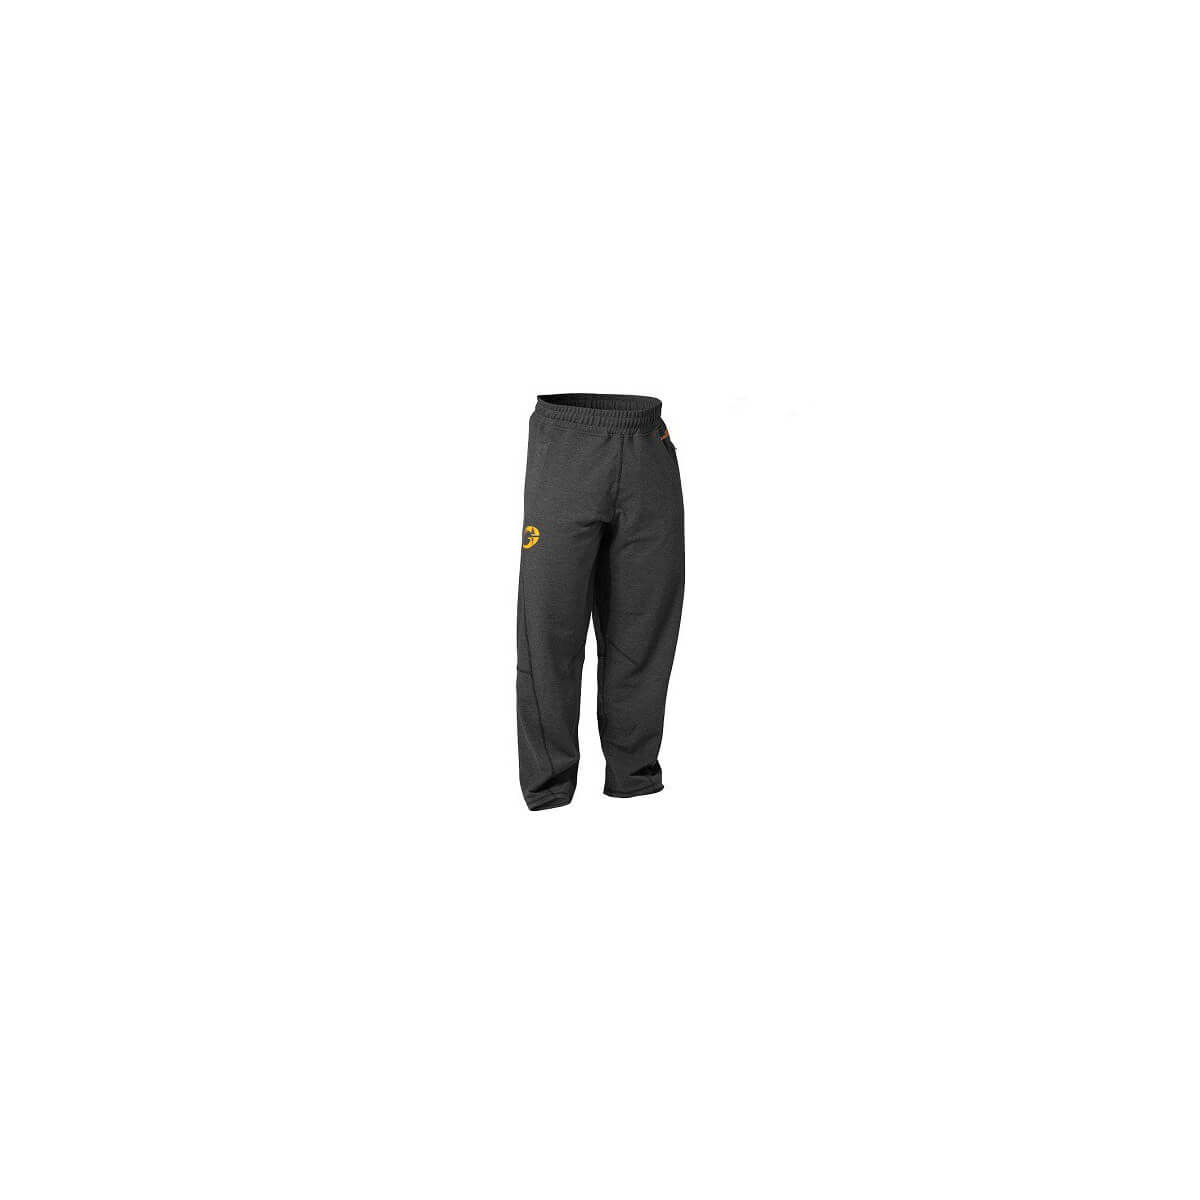 ANNEX GYM PANTS